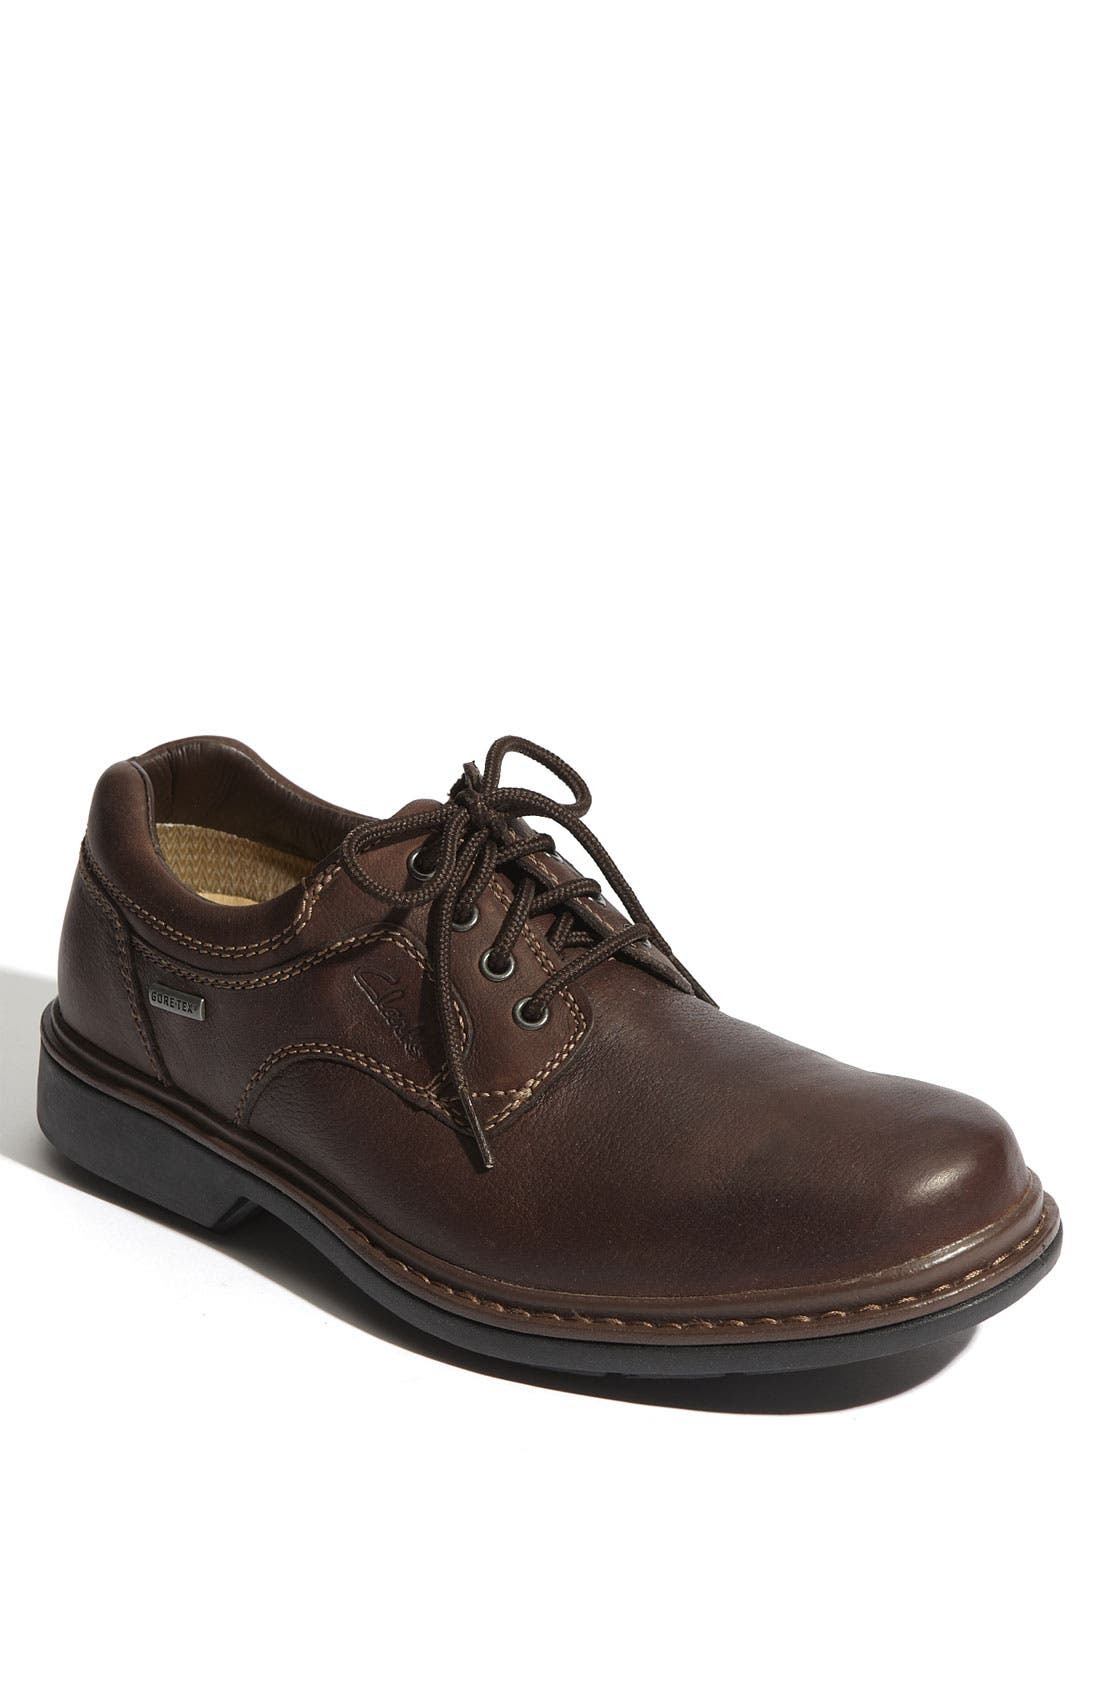 Alternate Image 1 Selected - Clarks® 'Rockie Lo' Oxford   (Men)